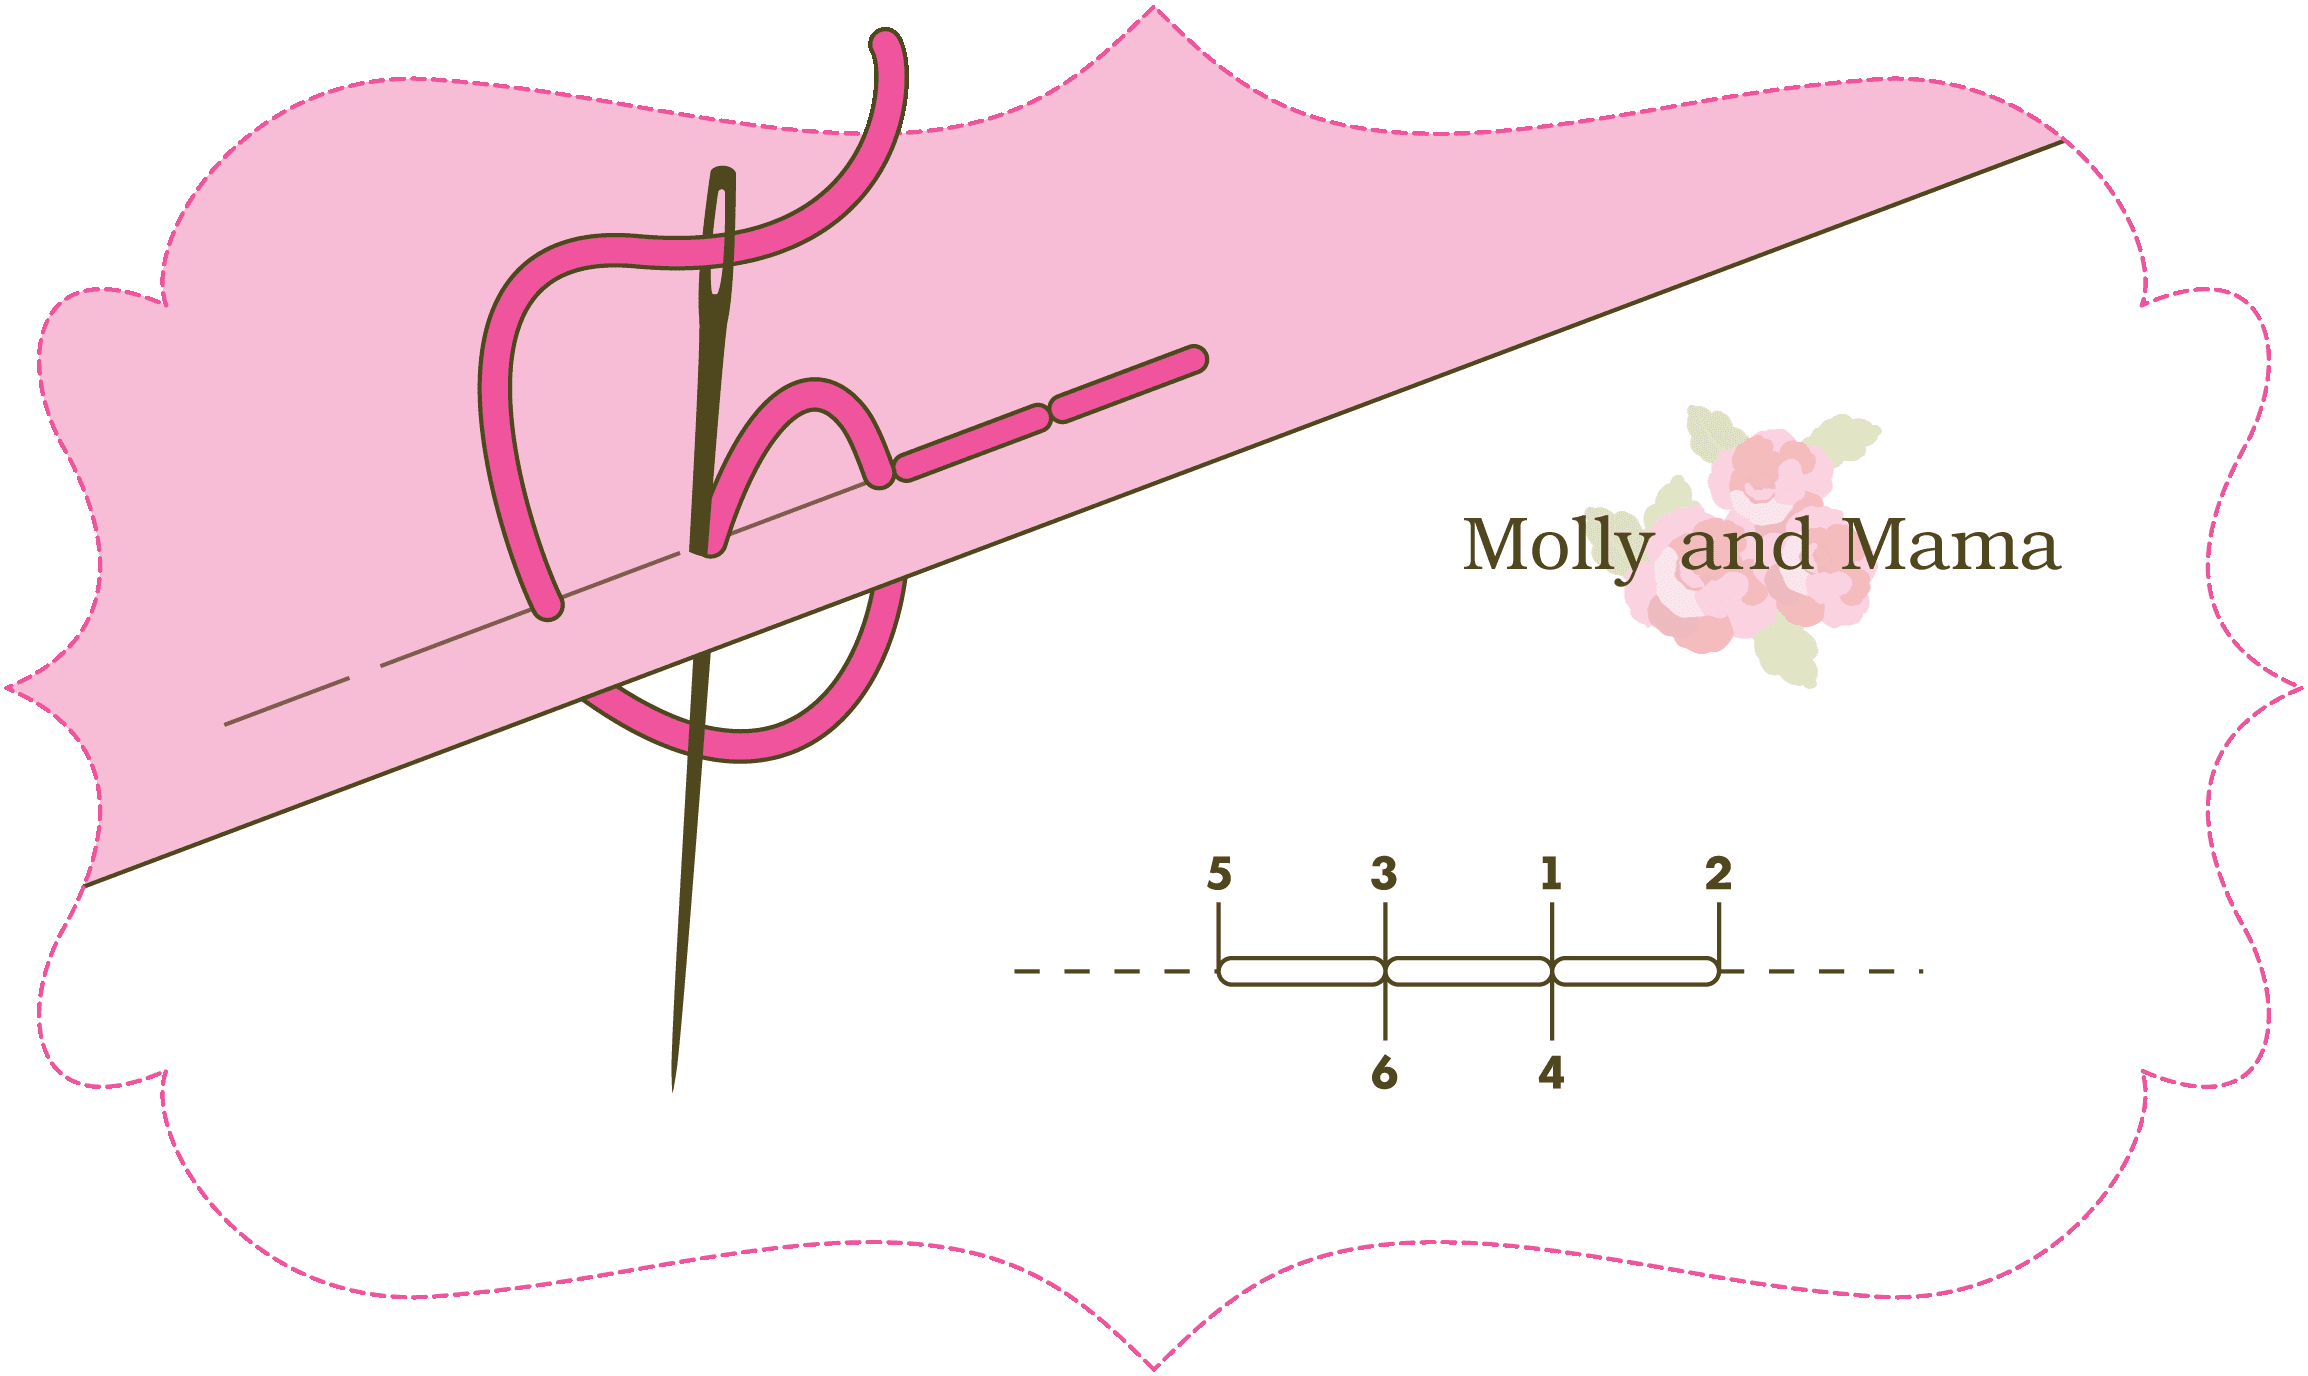 Molly and Mama back stitch illustration